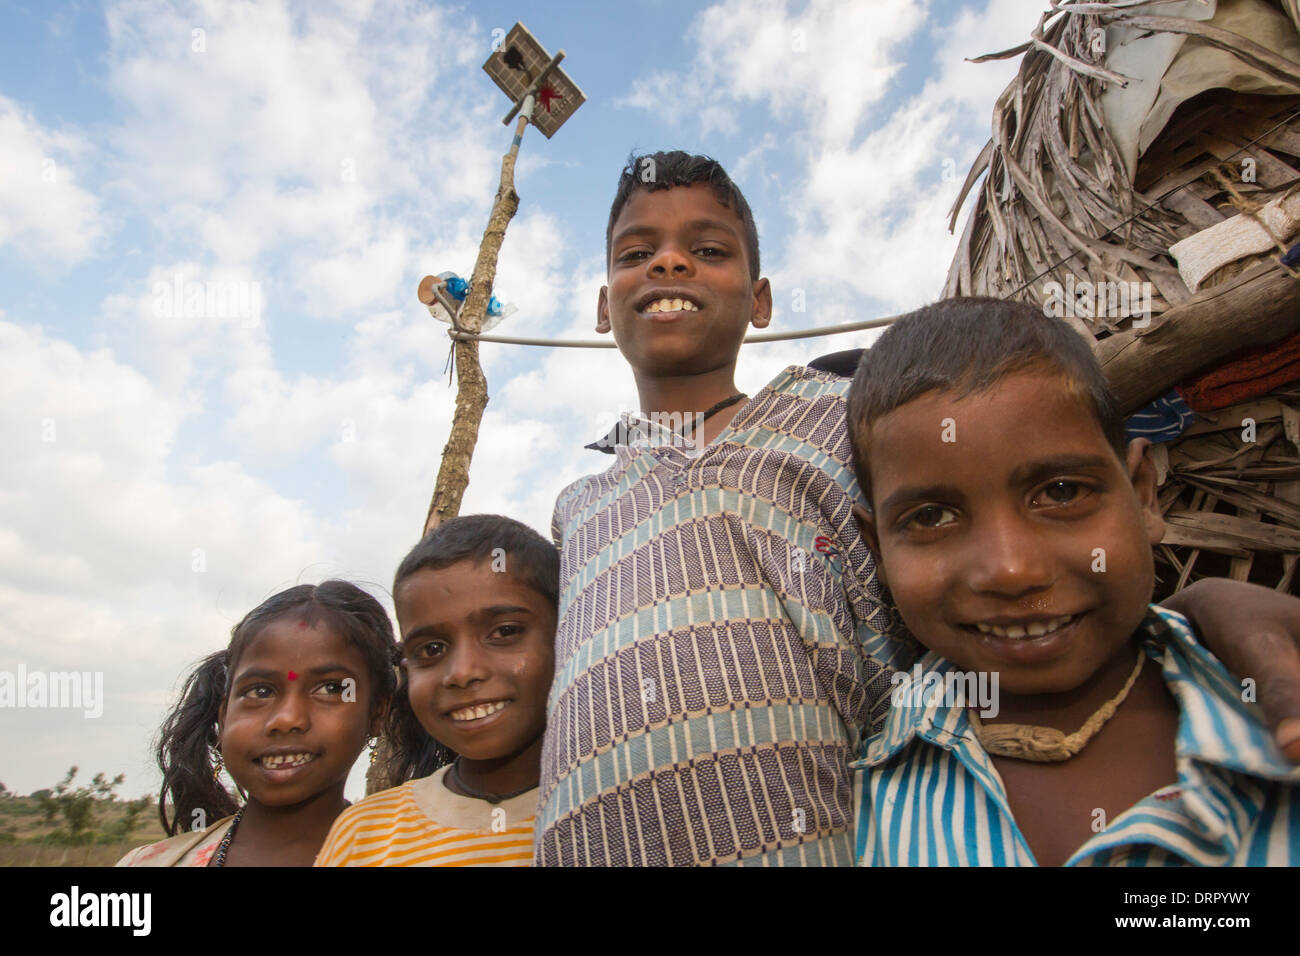 An untouchable family outside their hut, illuminated by an electric light, powered by an A4 sized solar panel - Stock Image